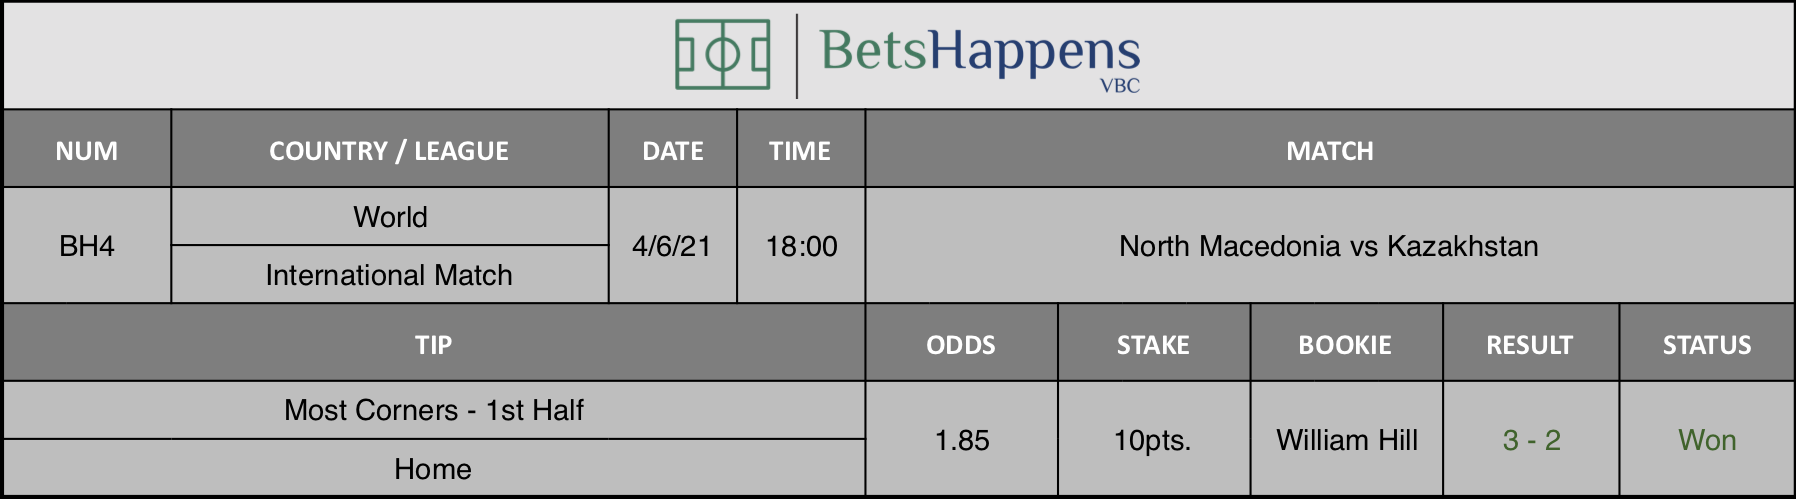 Results of our tip for the North Macedonia vs Kazakhstan where Most Corners - 1st Half Home is recommended.